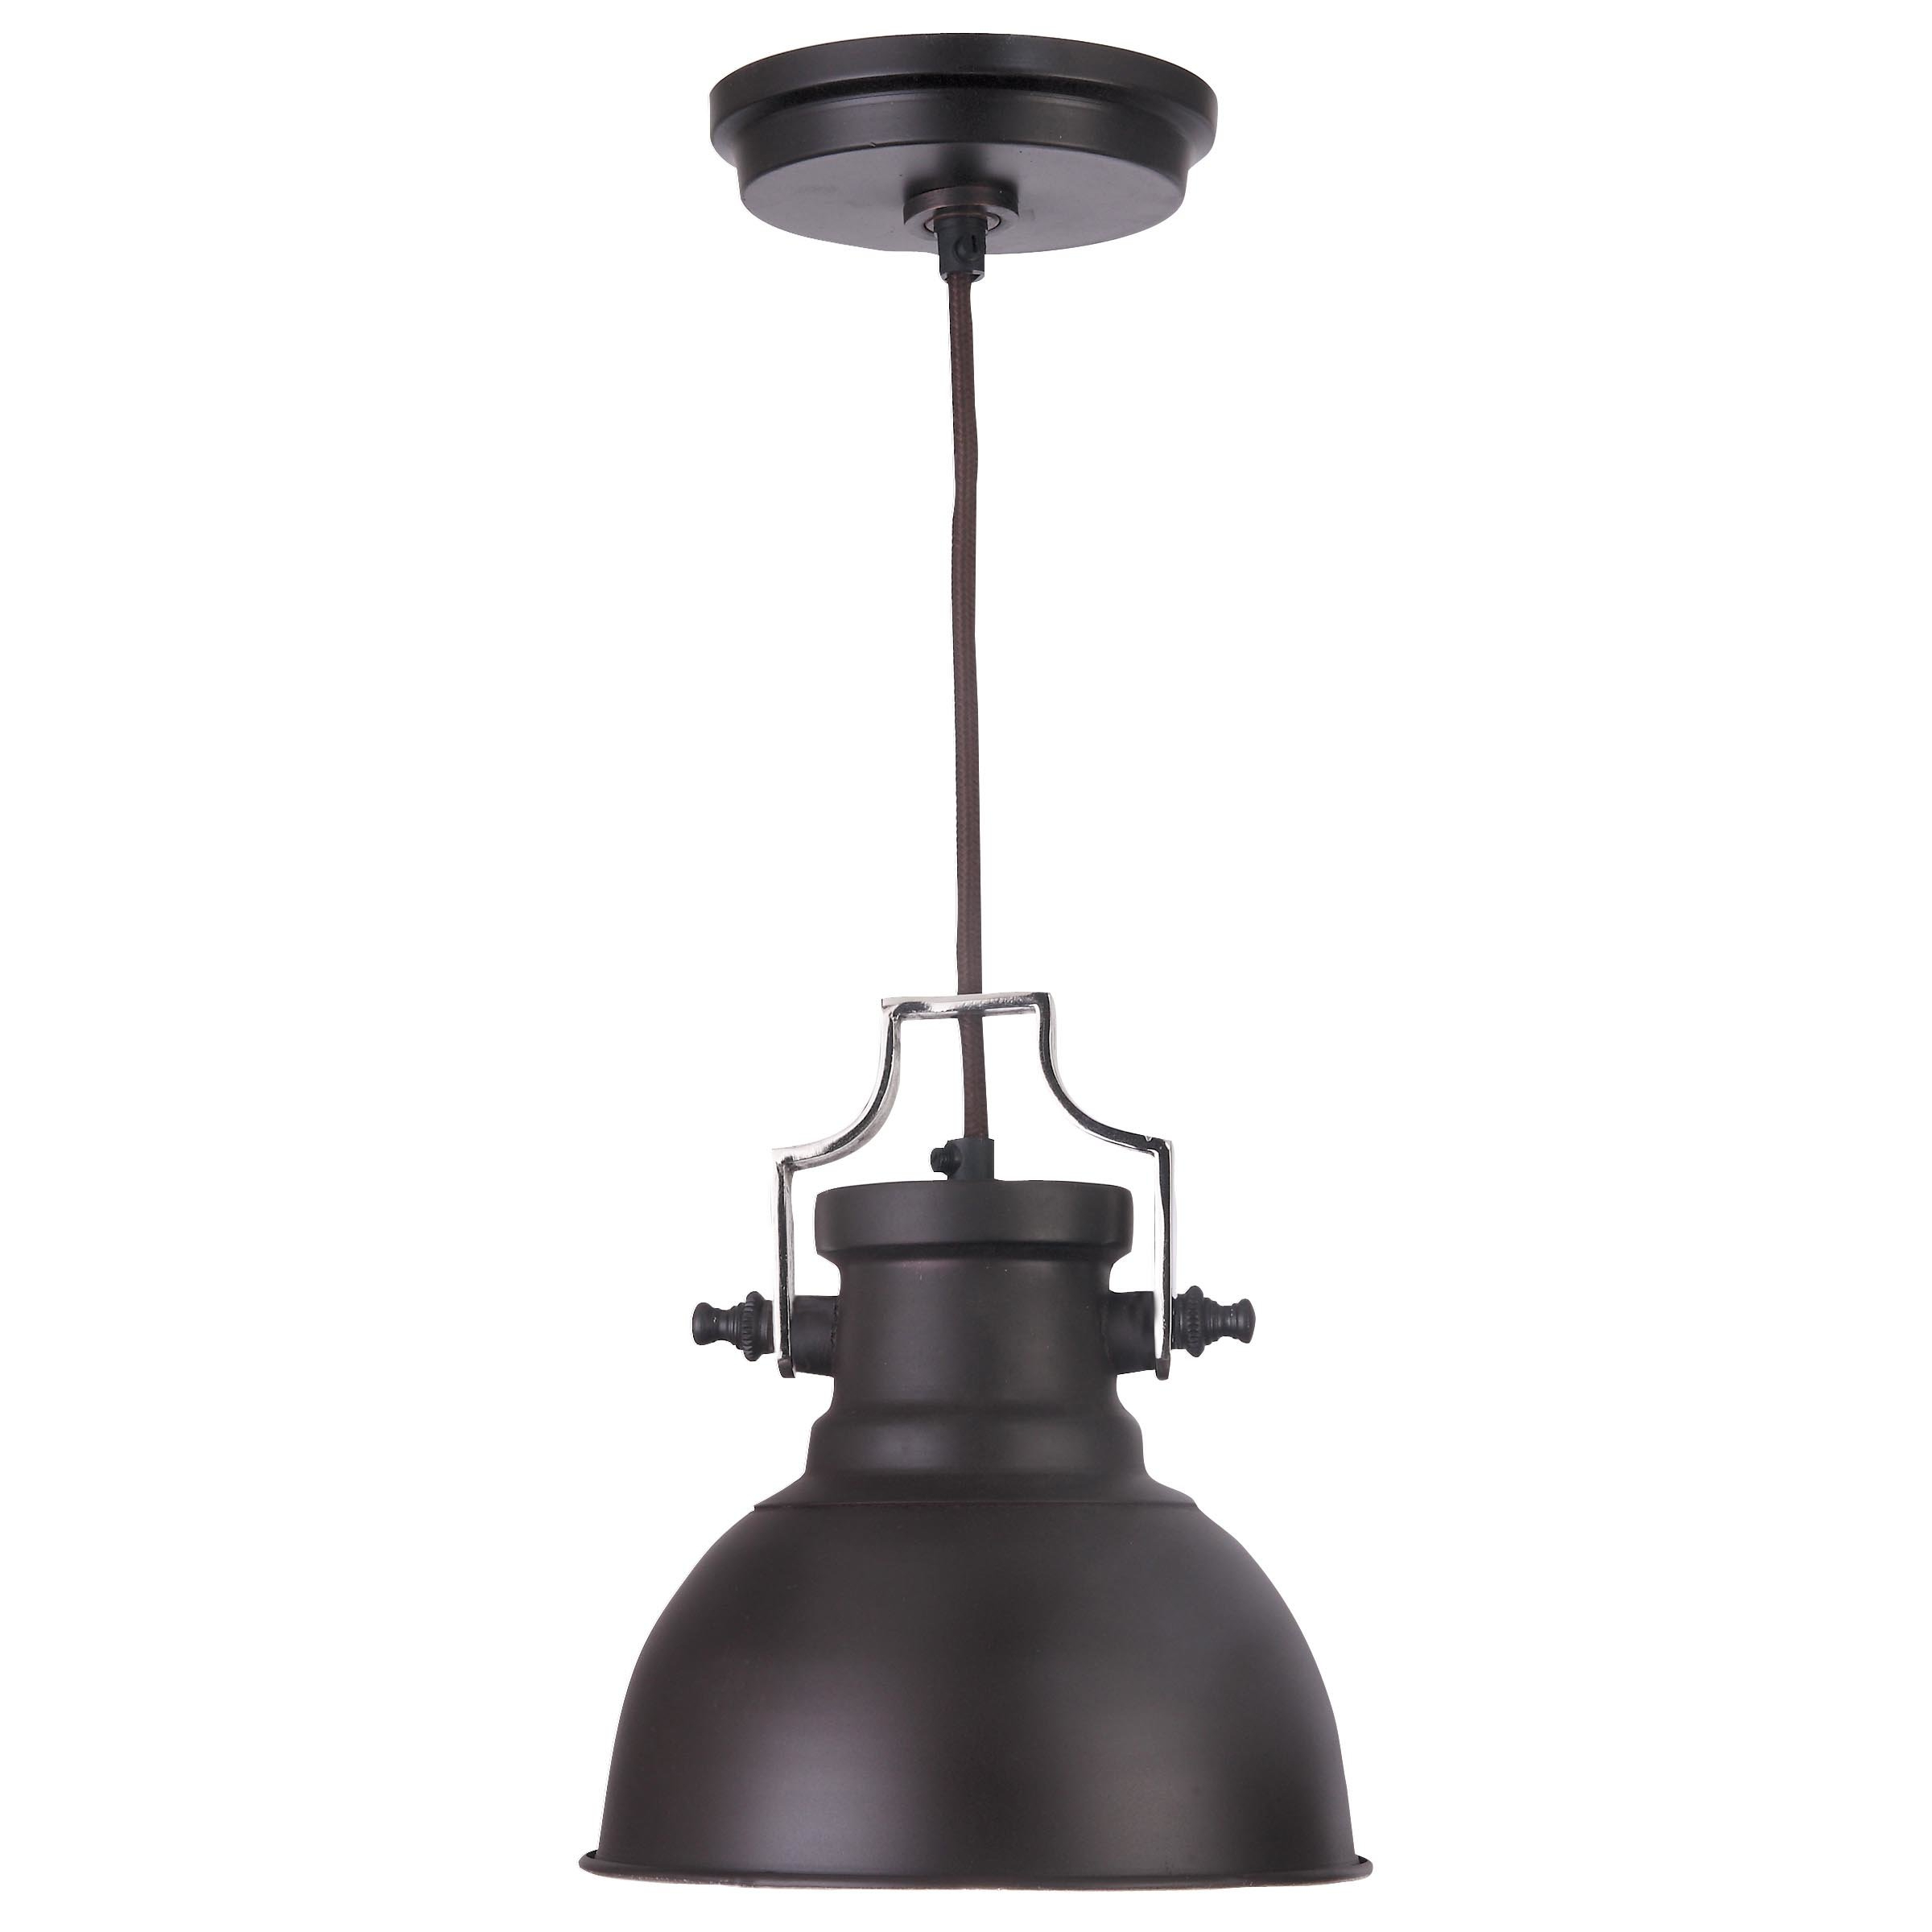 Widely Used Priston 1 Light Single Dome Pendants Regarding Jules 1 Light Single Dome Pendant (Gallery 16 of 20)